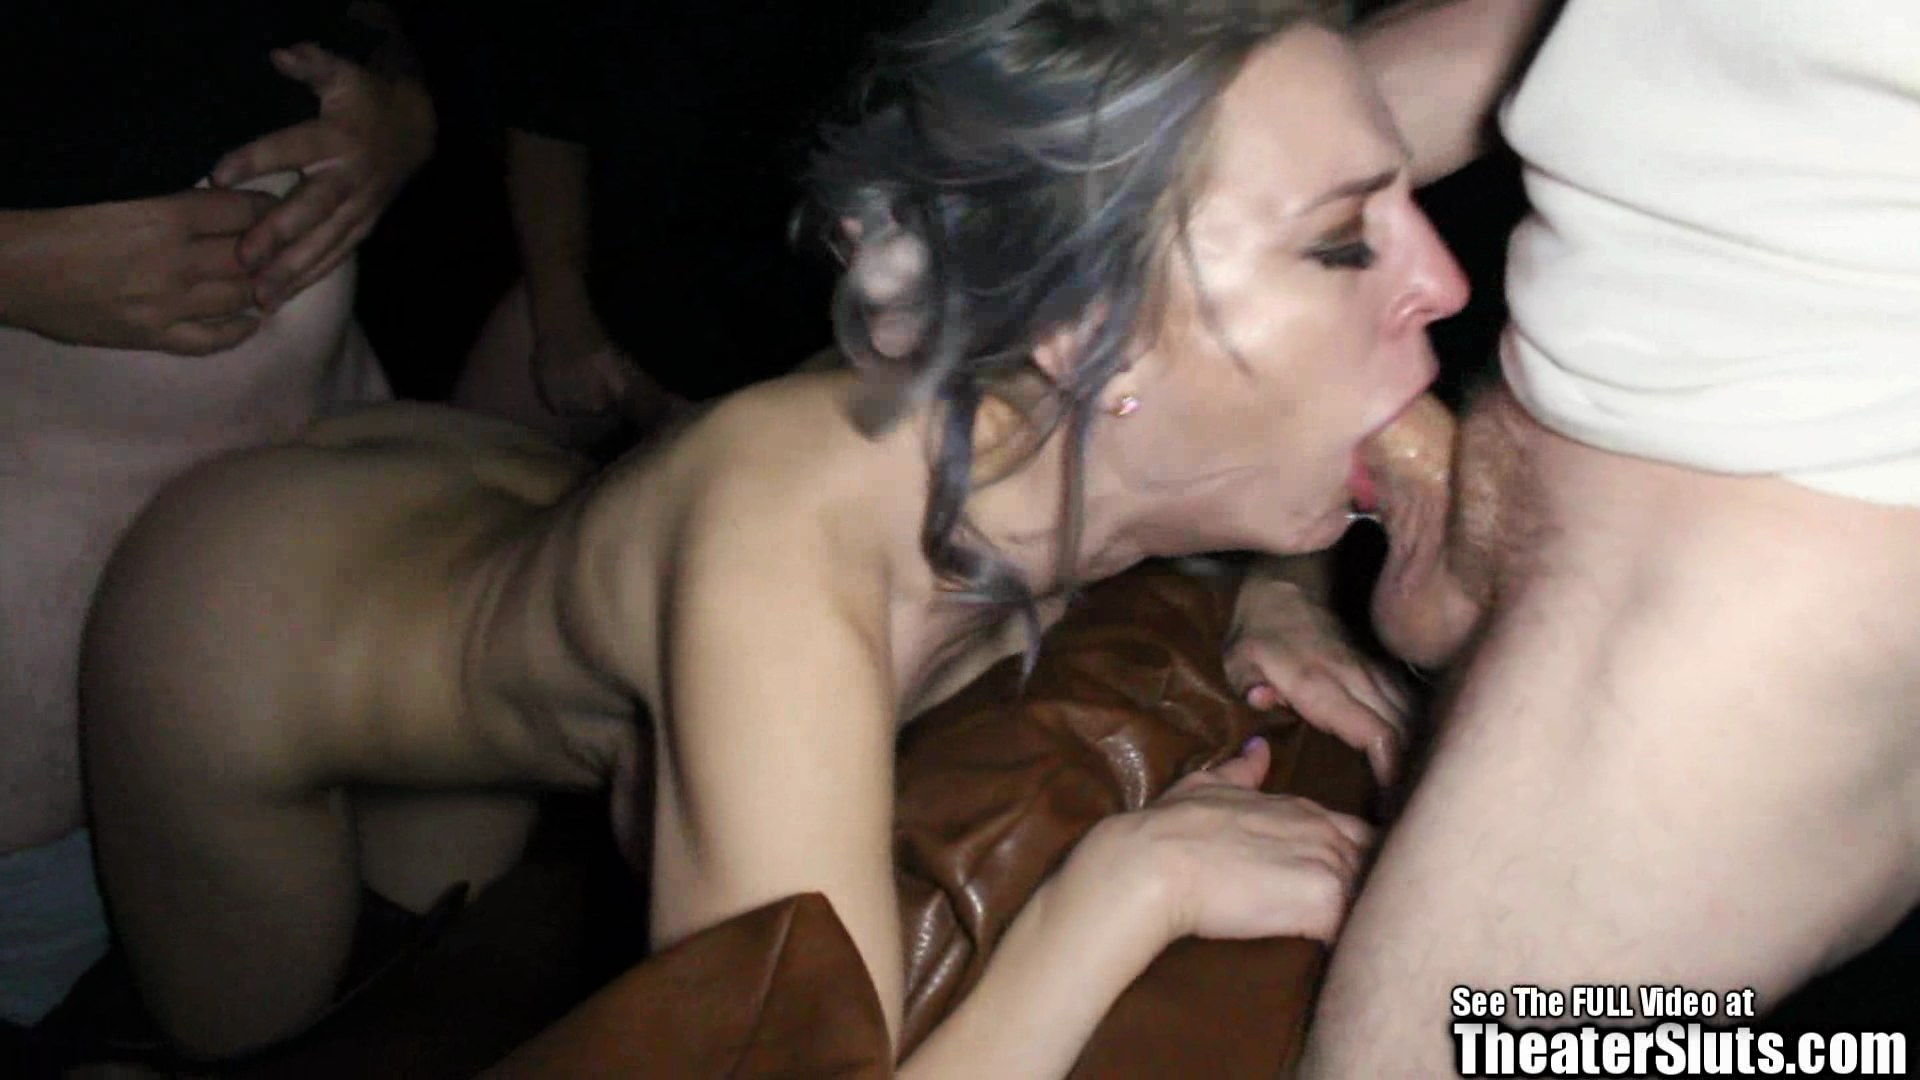 hot shemale free all length videos